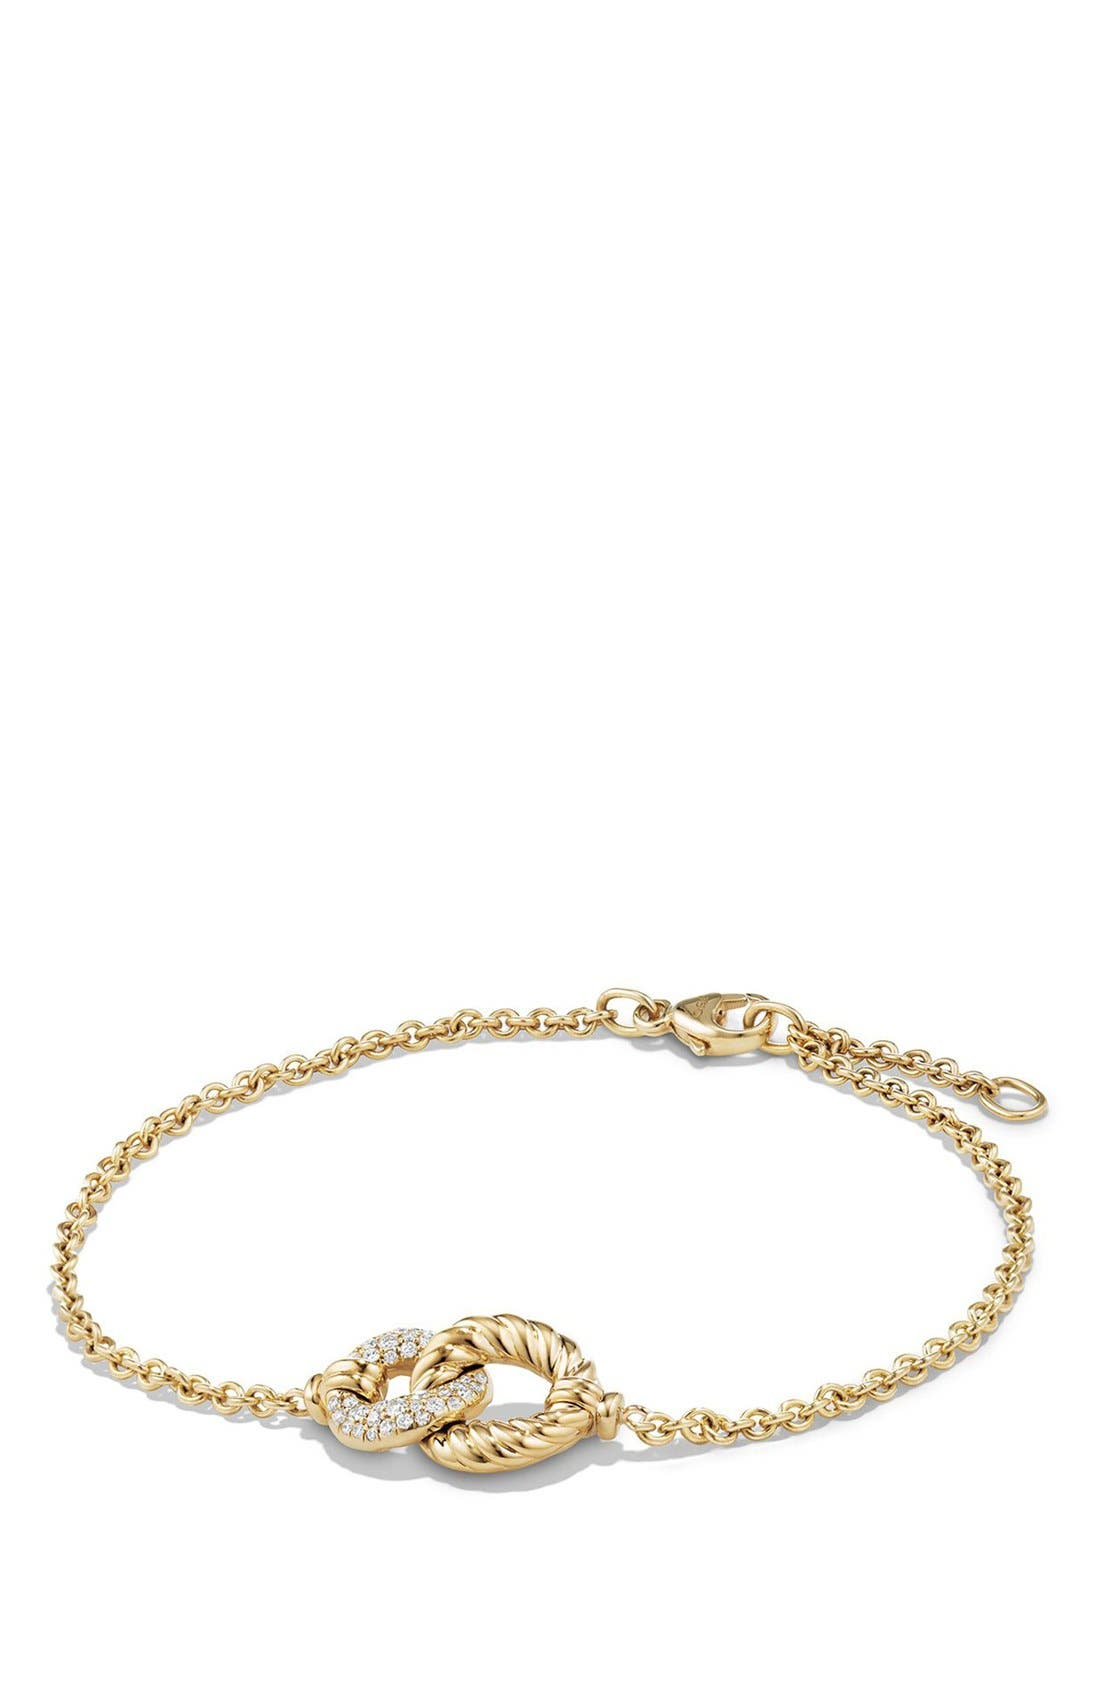 Belmont Single Station Bracelet,                         Main,                         color, YELLOW GOLD/ DIAMOND